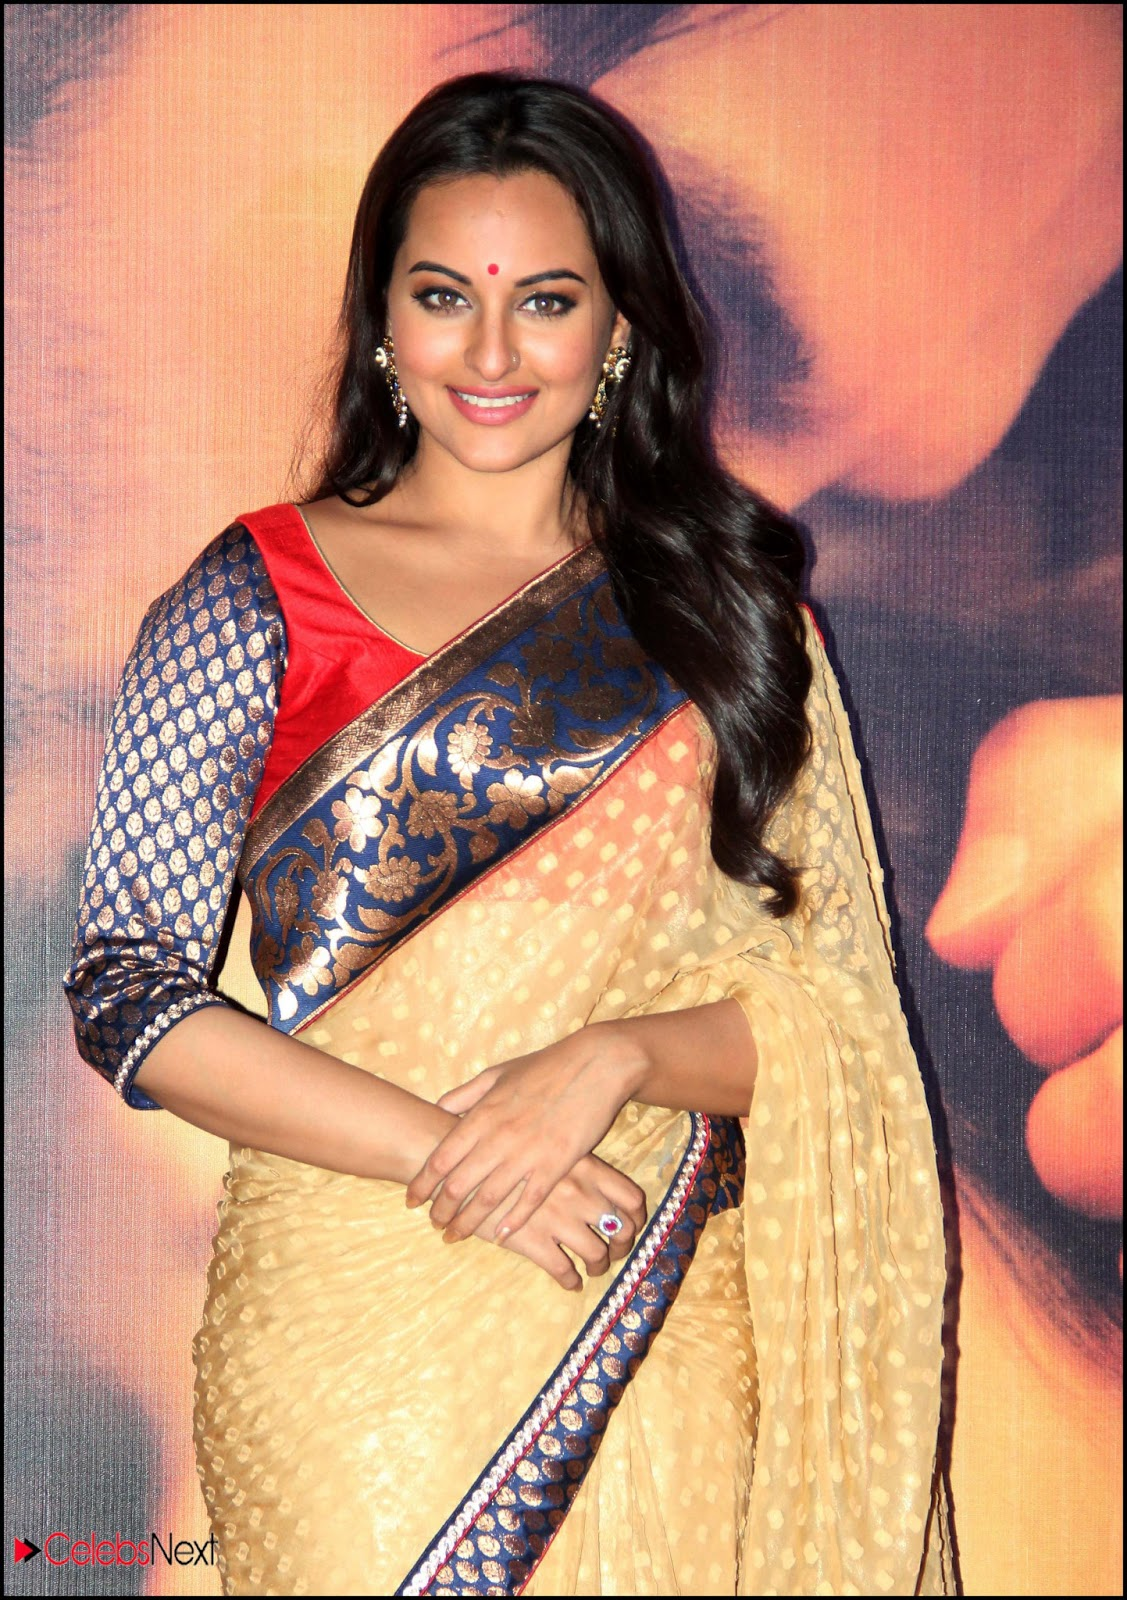 CelebsNext ~ Bollywood and South Indian Cinema Actress ...